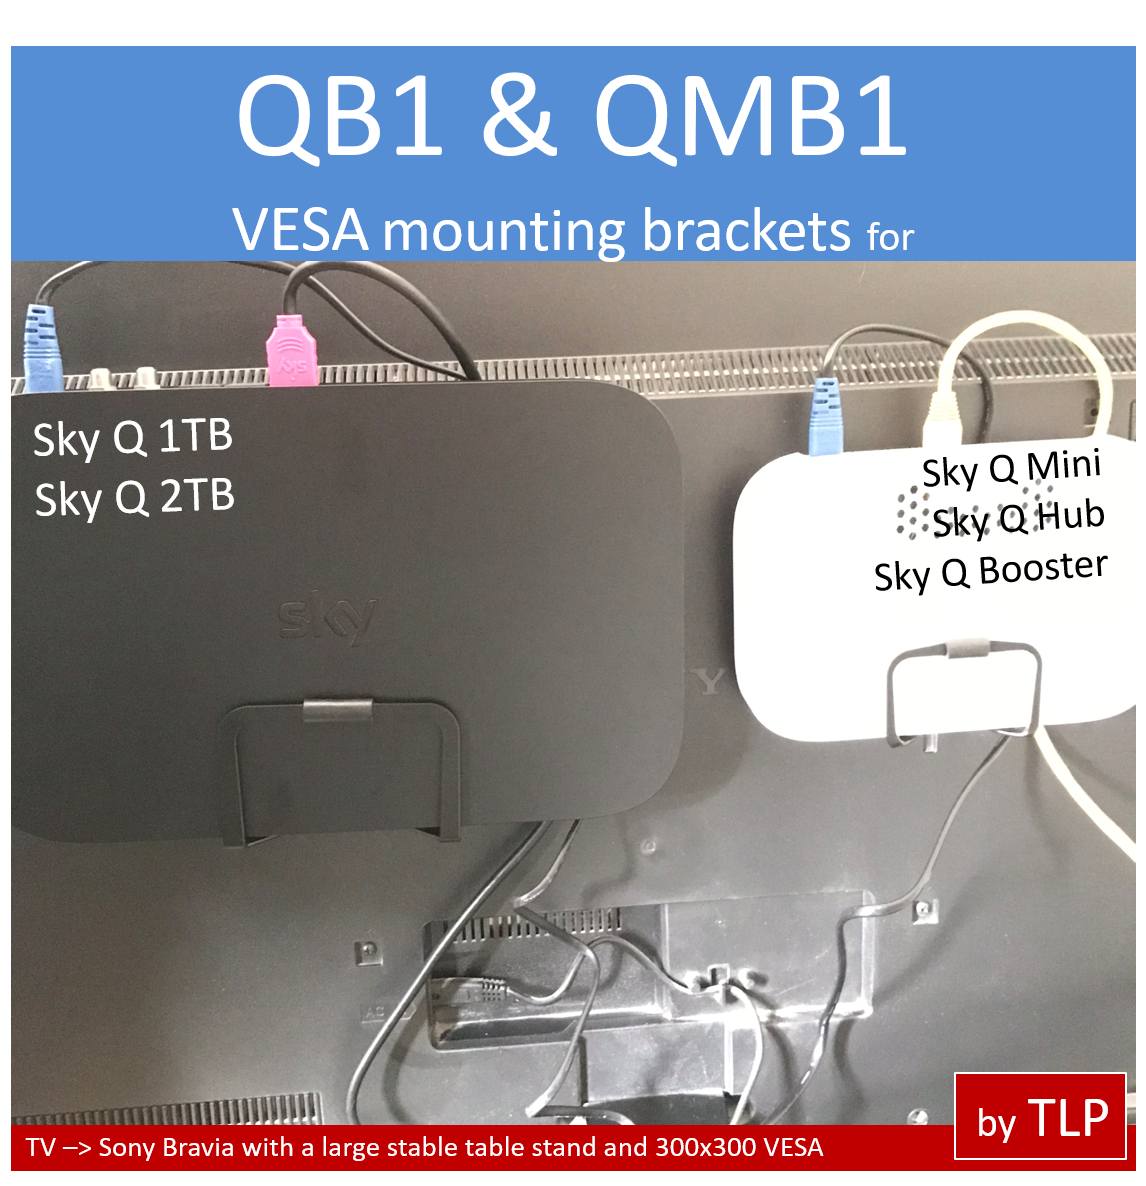 http://triplelinkproducts.co.uk/wp-content/uploads/2018/07/QB1QMB1-mounted.png